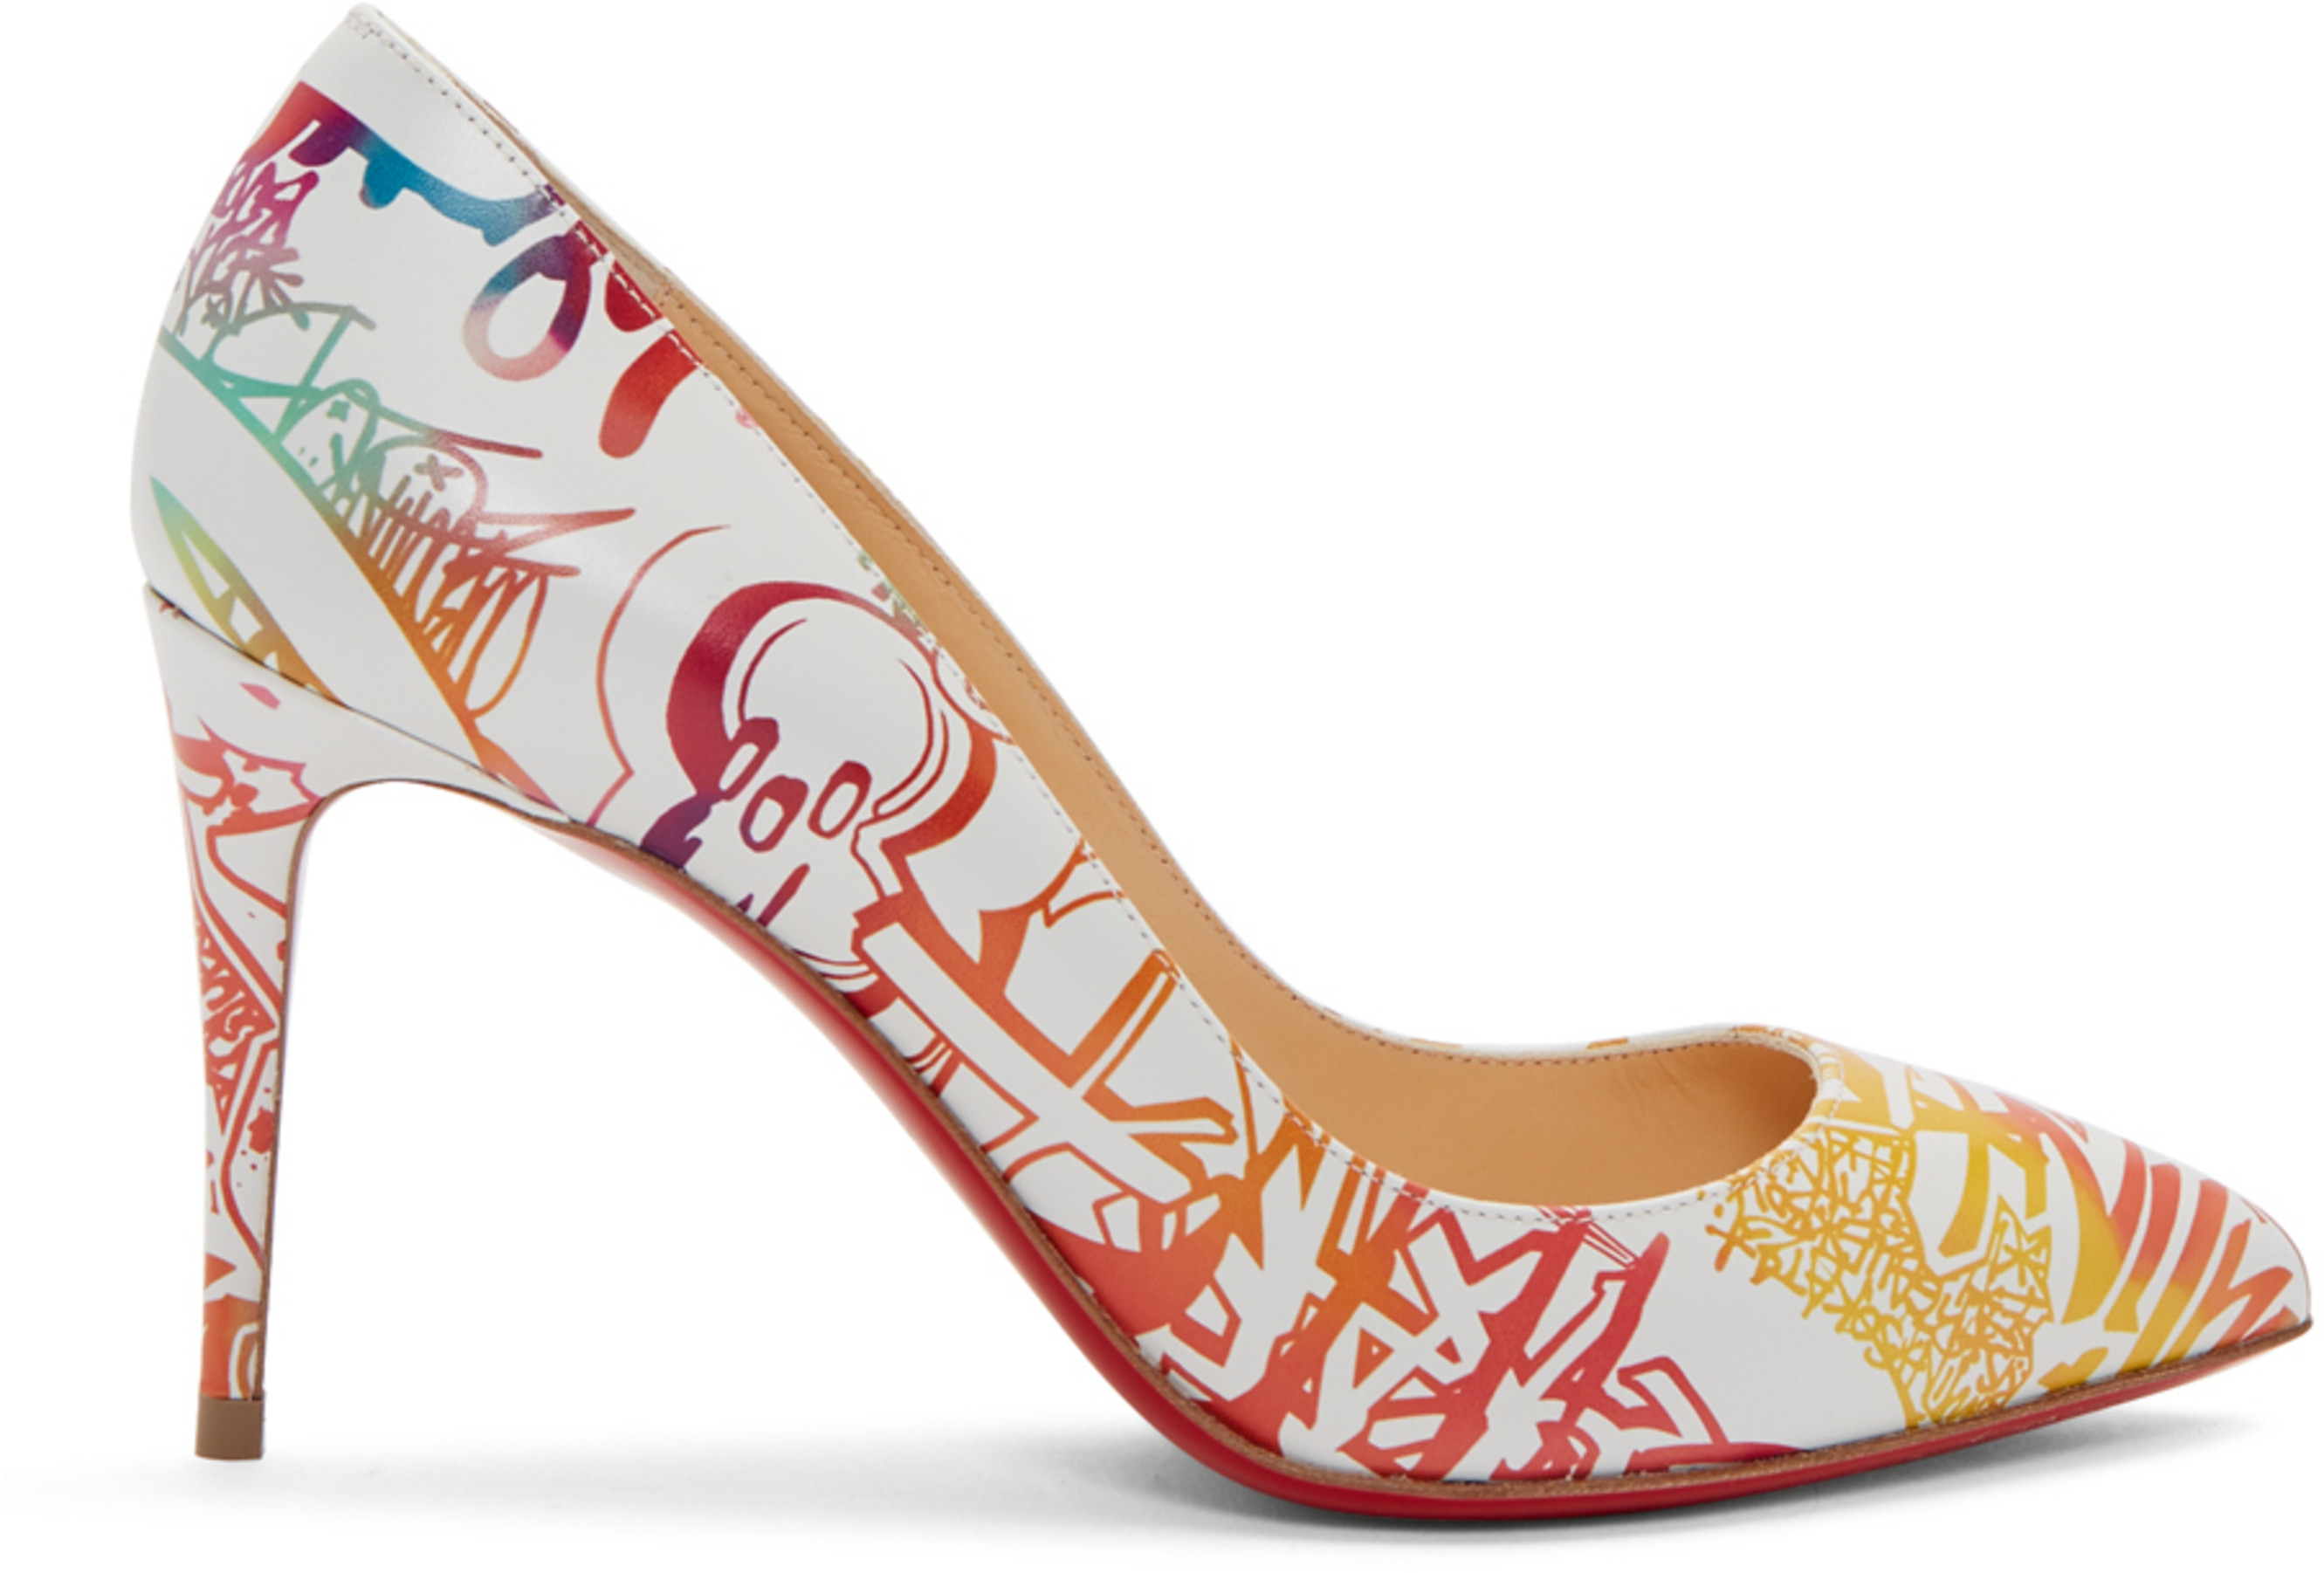 ffe00ef1cce3 Christian Louboutin for Women SS19 Collection